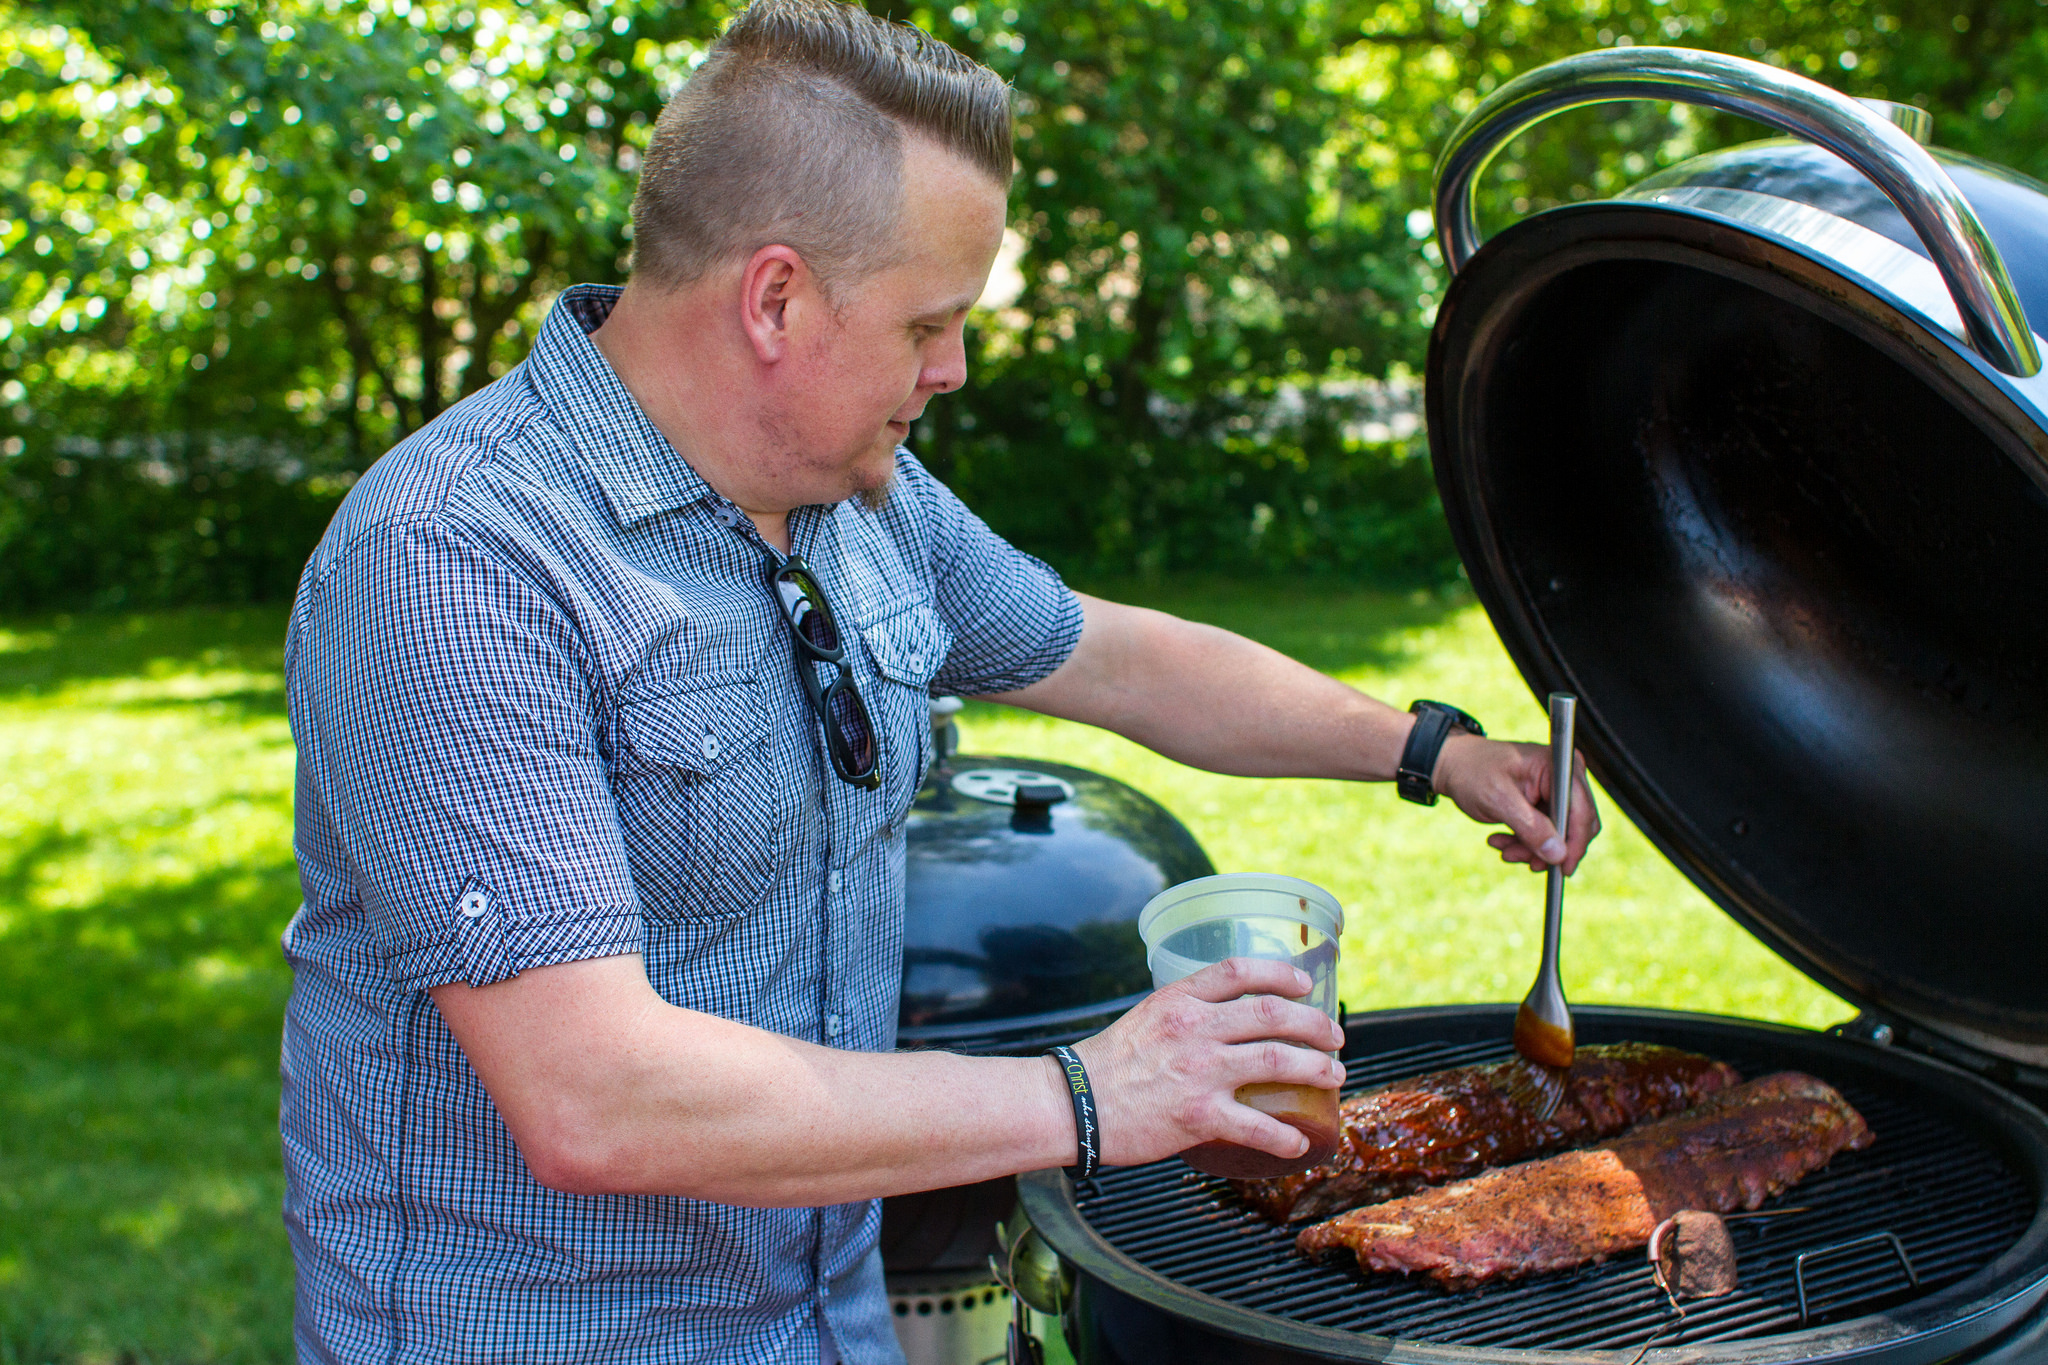 saucing ribs on the weber summit charcoal grill.jpghttps://www.flickr.com/photos/anotherpintplease/29262165836/in/dateposted/